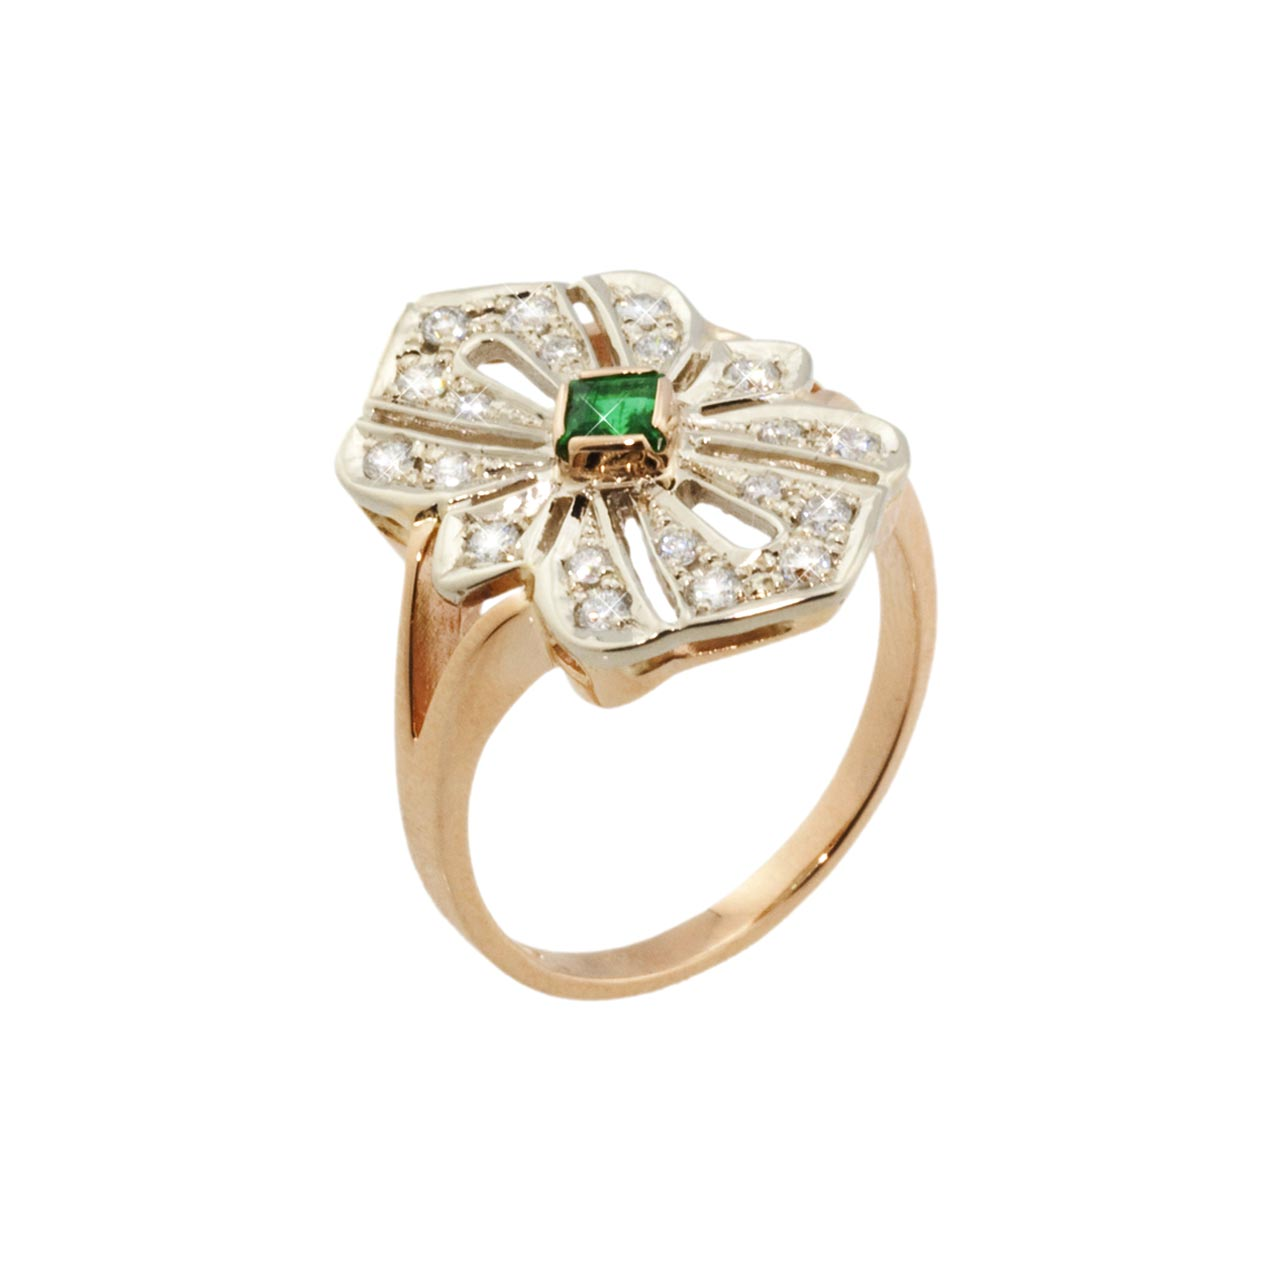 Faberge style emerald ring